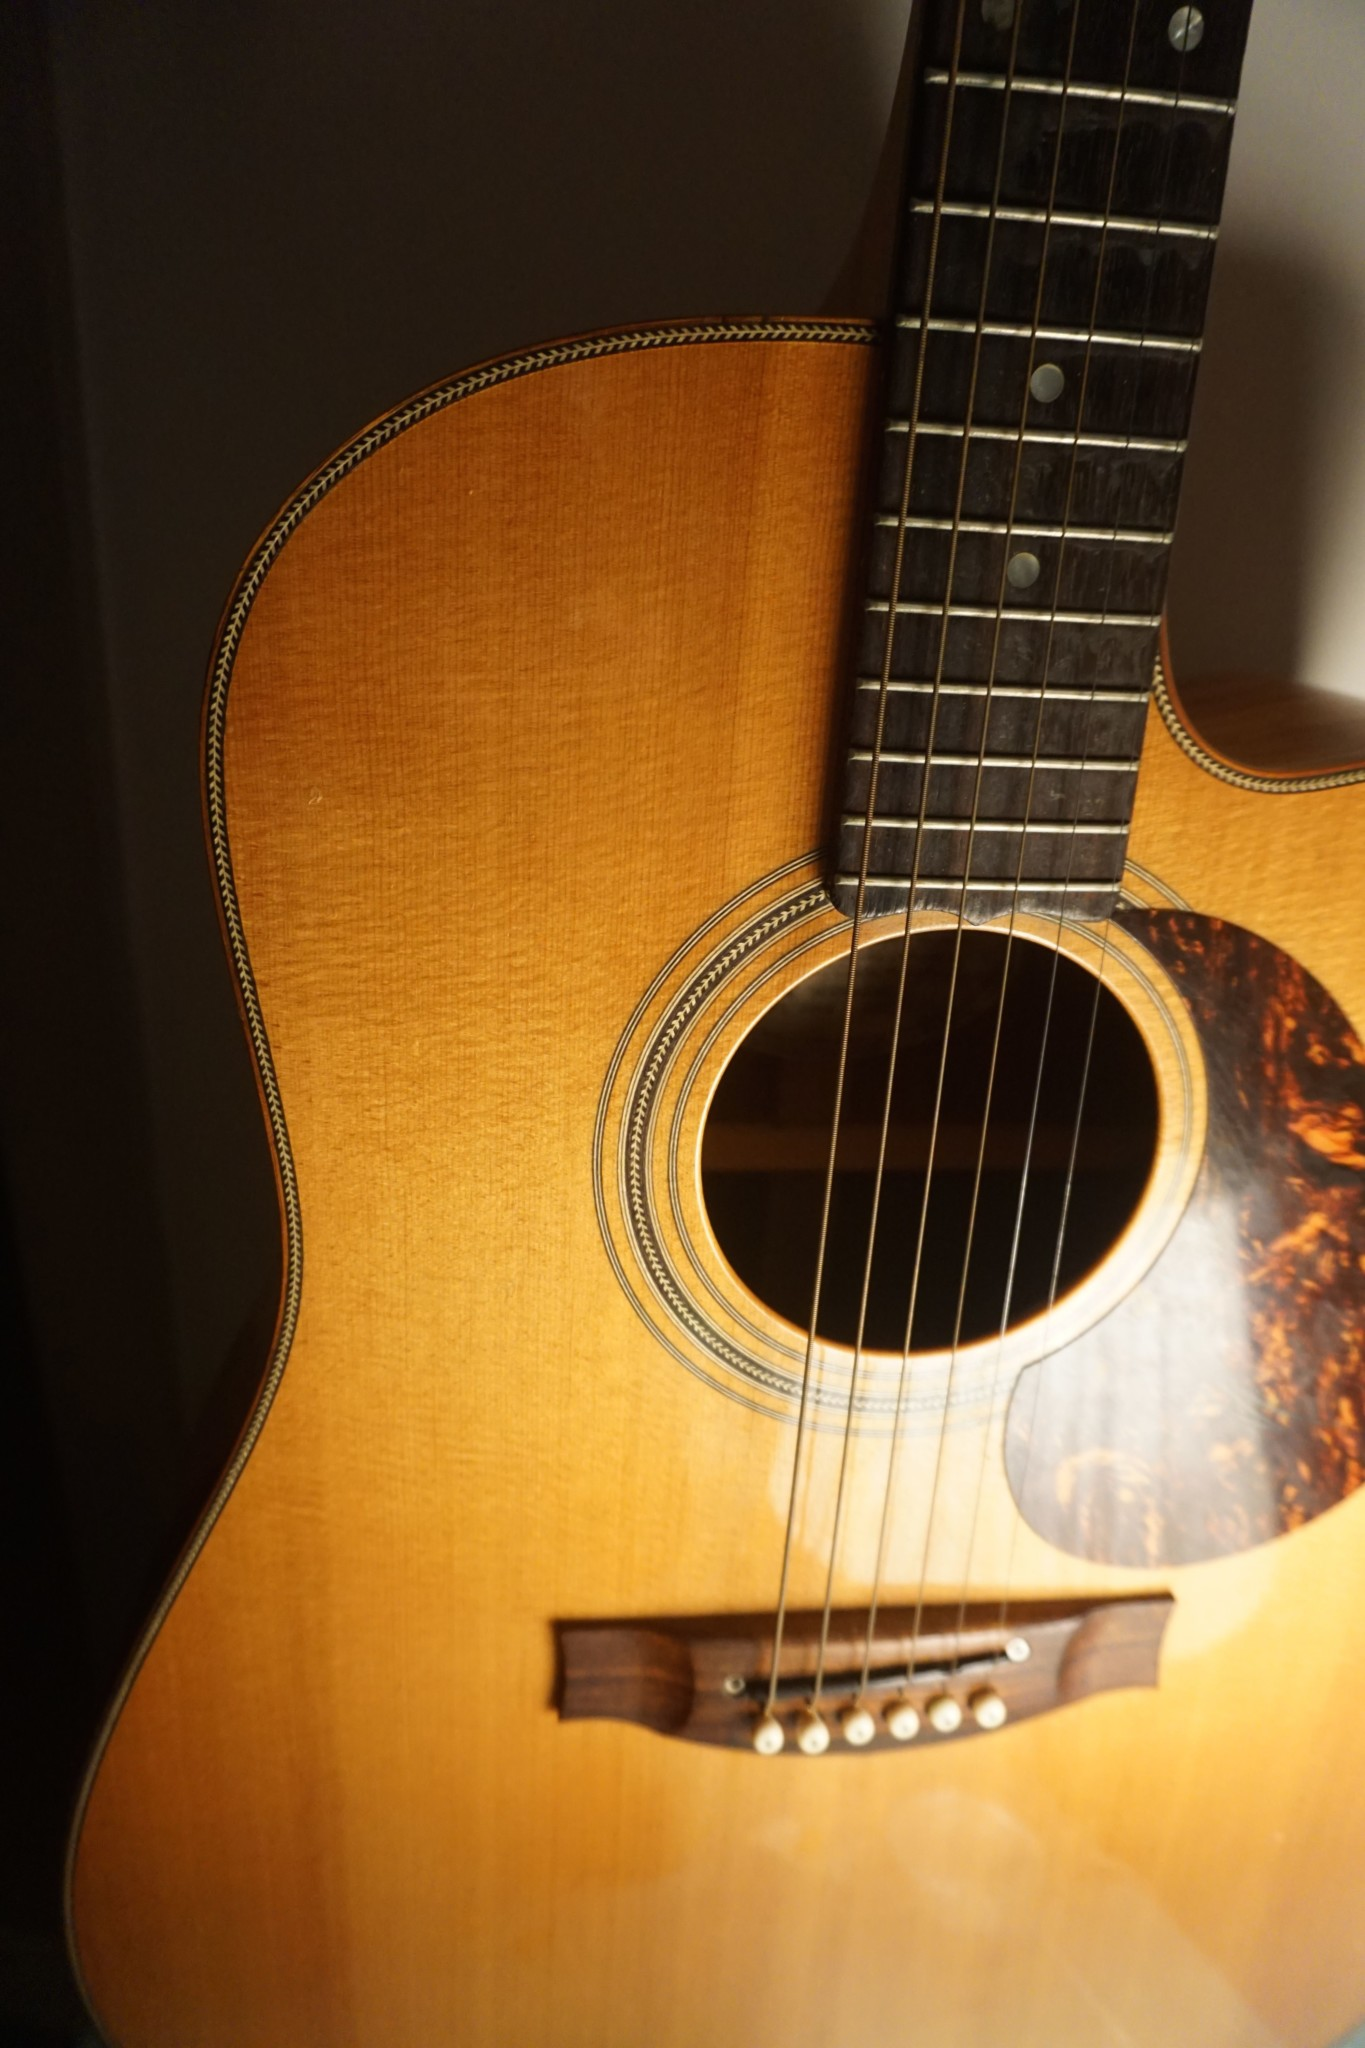 hong kong guitar lessons teach me the guitar lessons at home. Black Bedroom Furniture Sets. Home Design Ideas